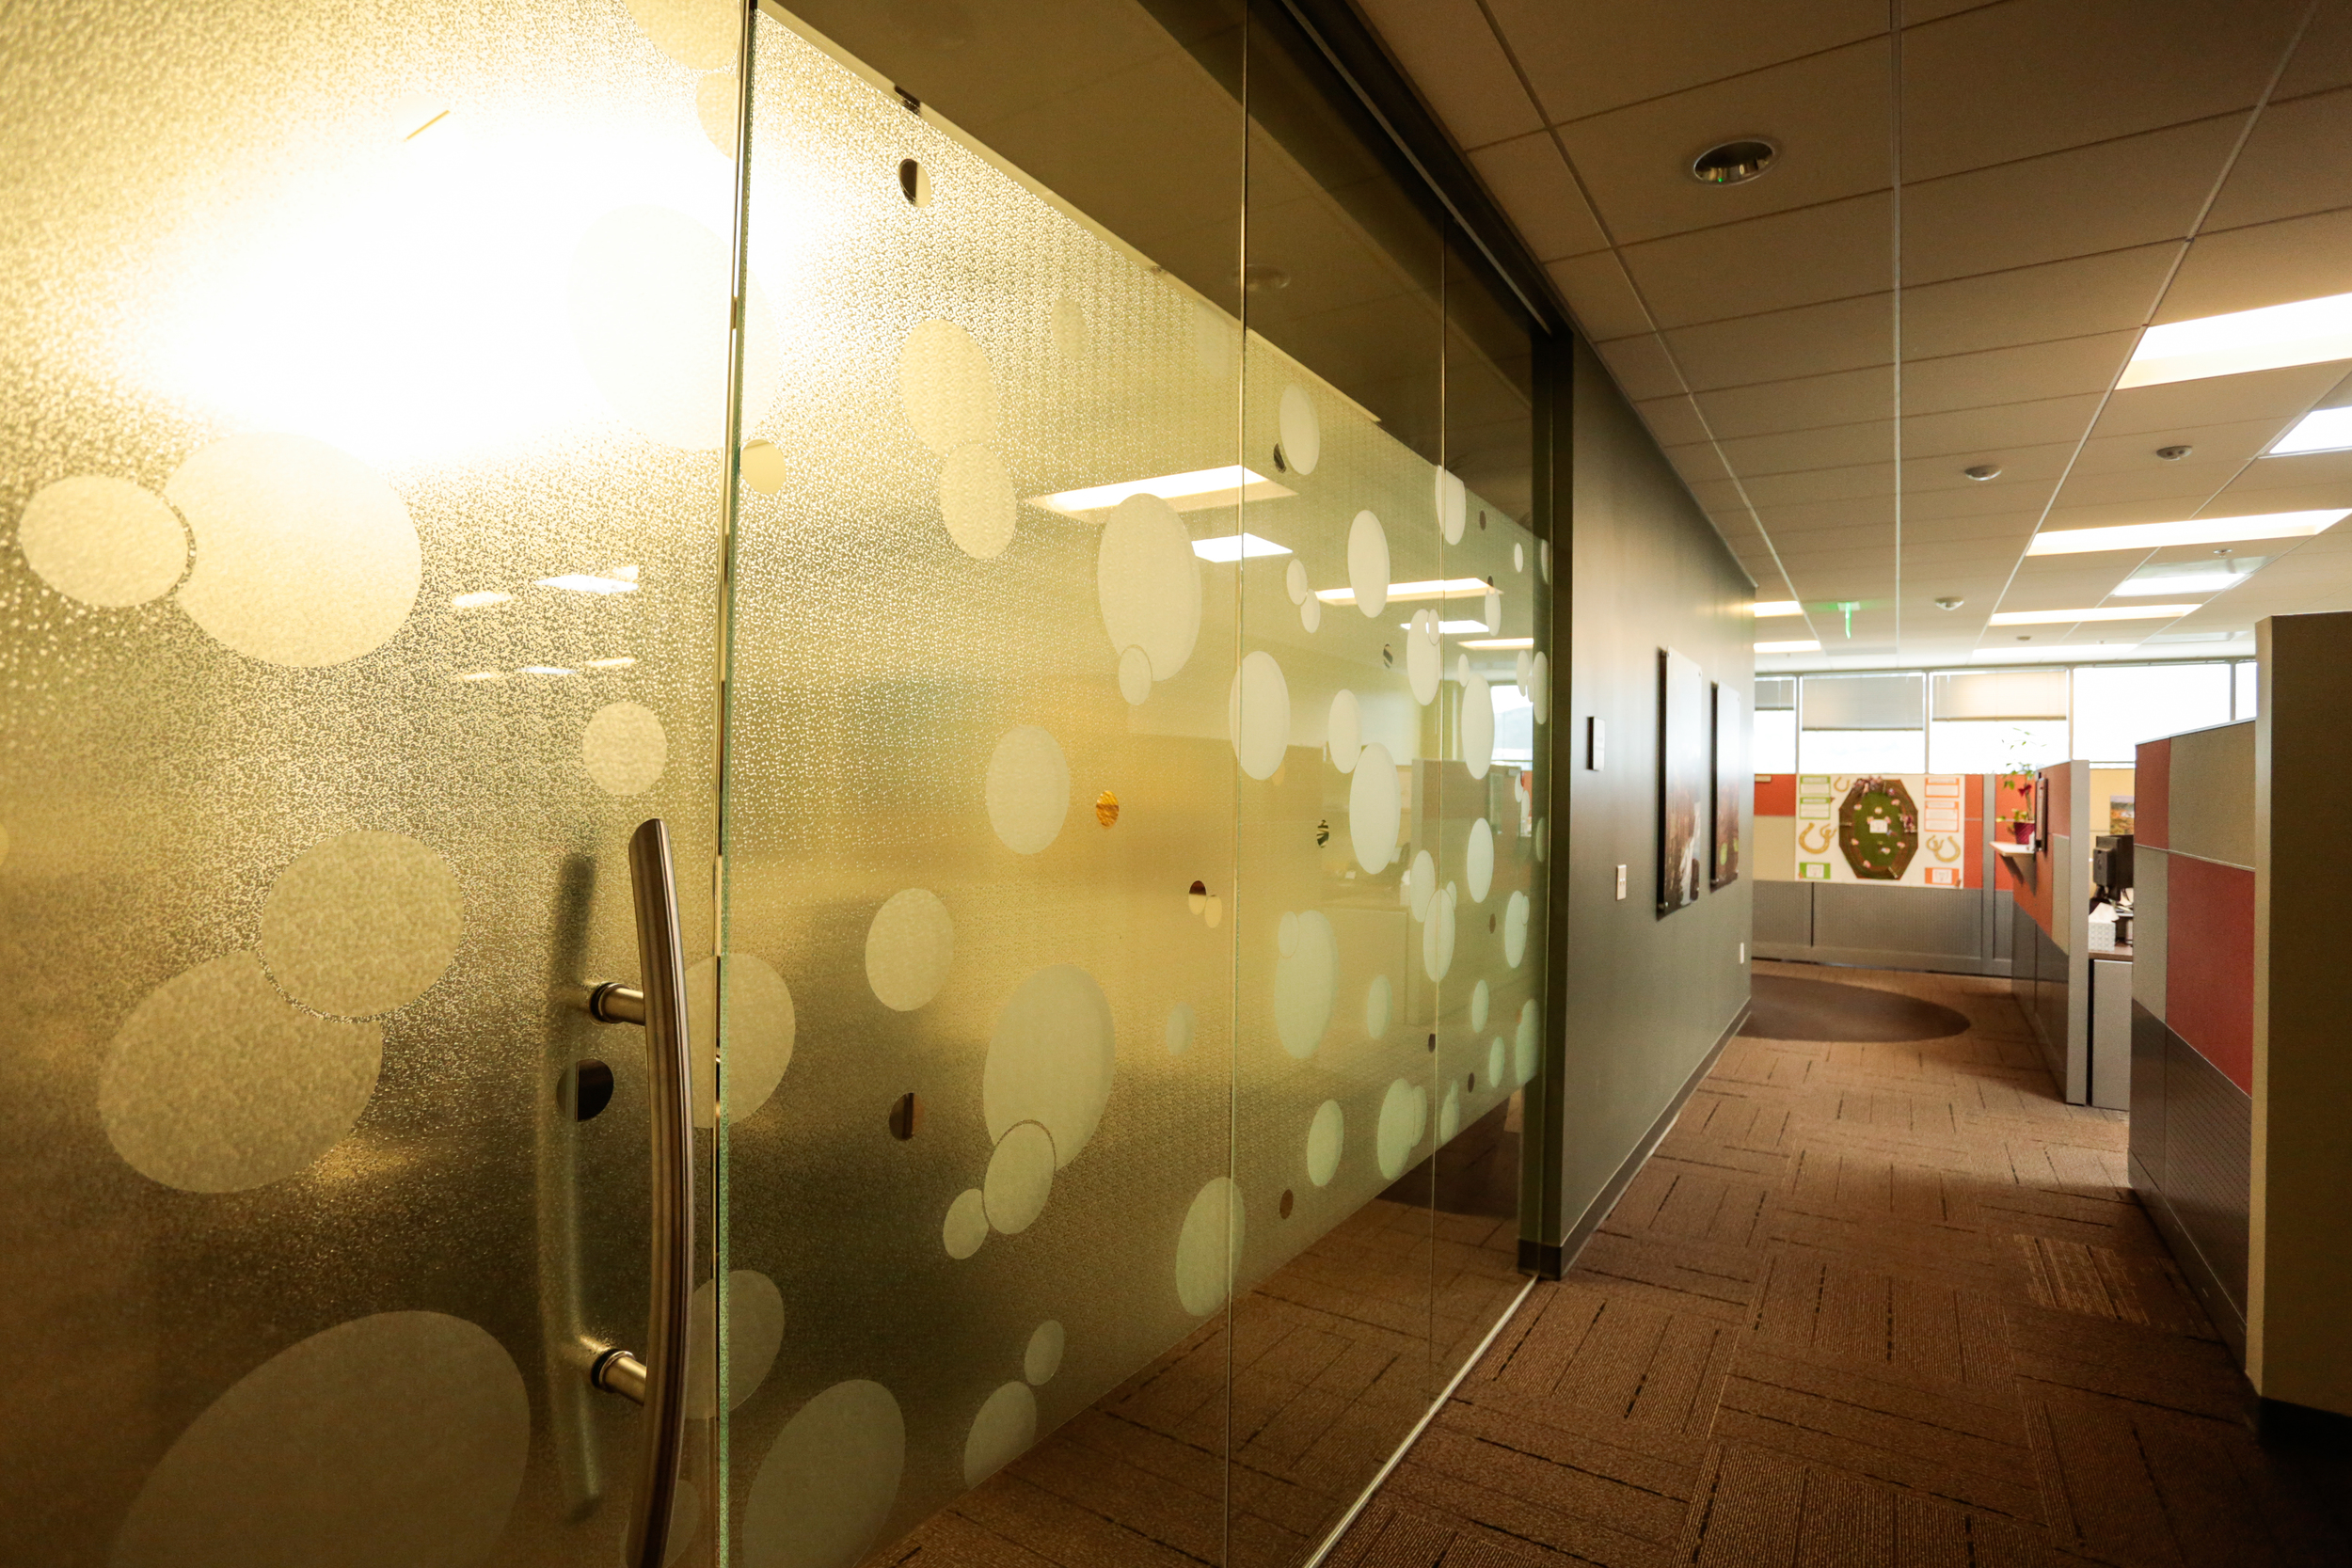 Welk Resorts - Corporate Office tenant improvement by K.D. Stahl Construction Group Inc.